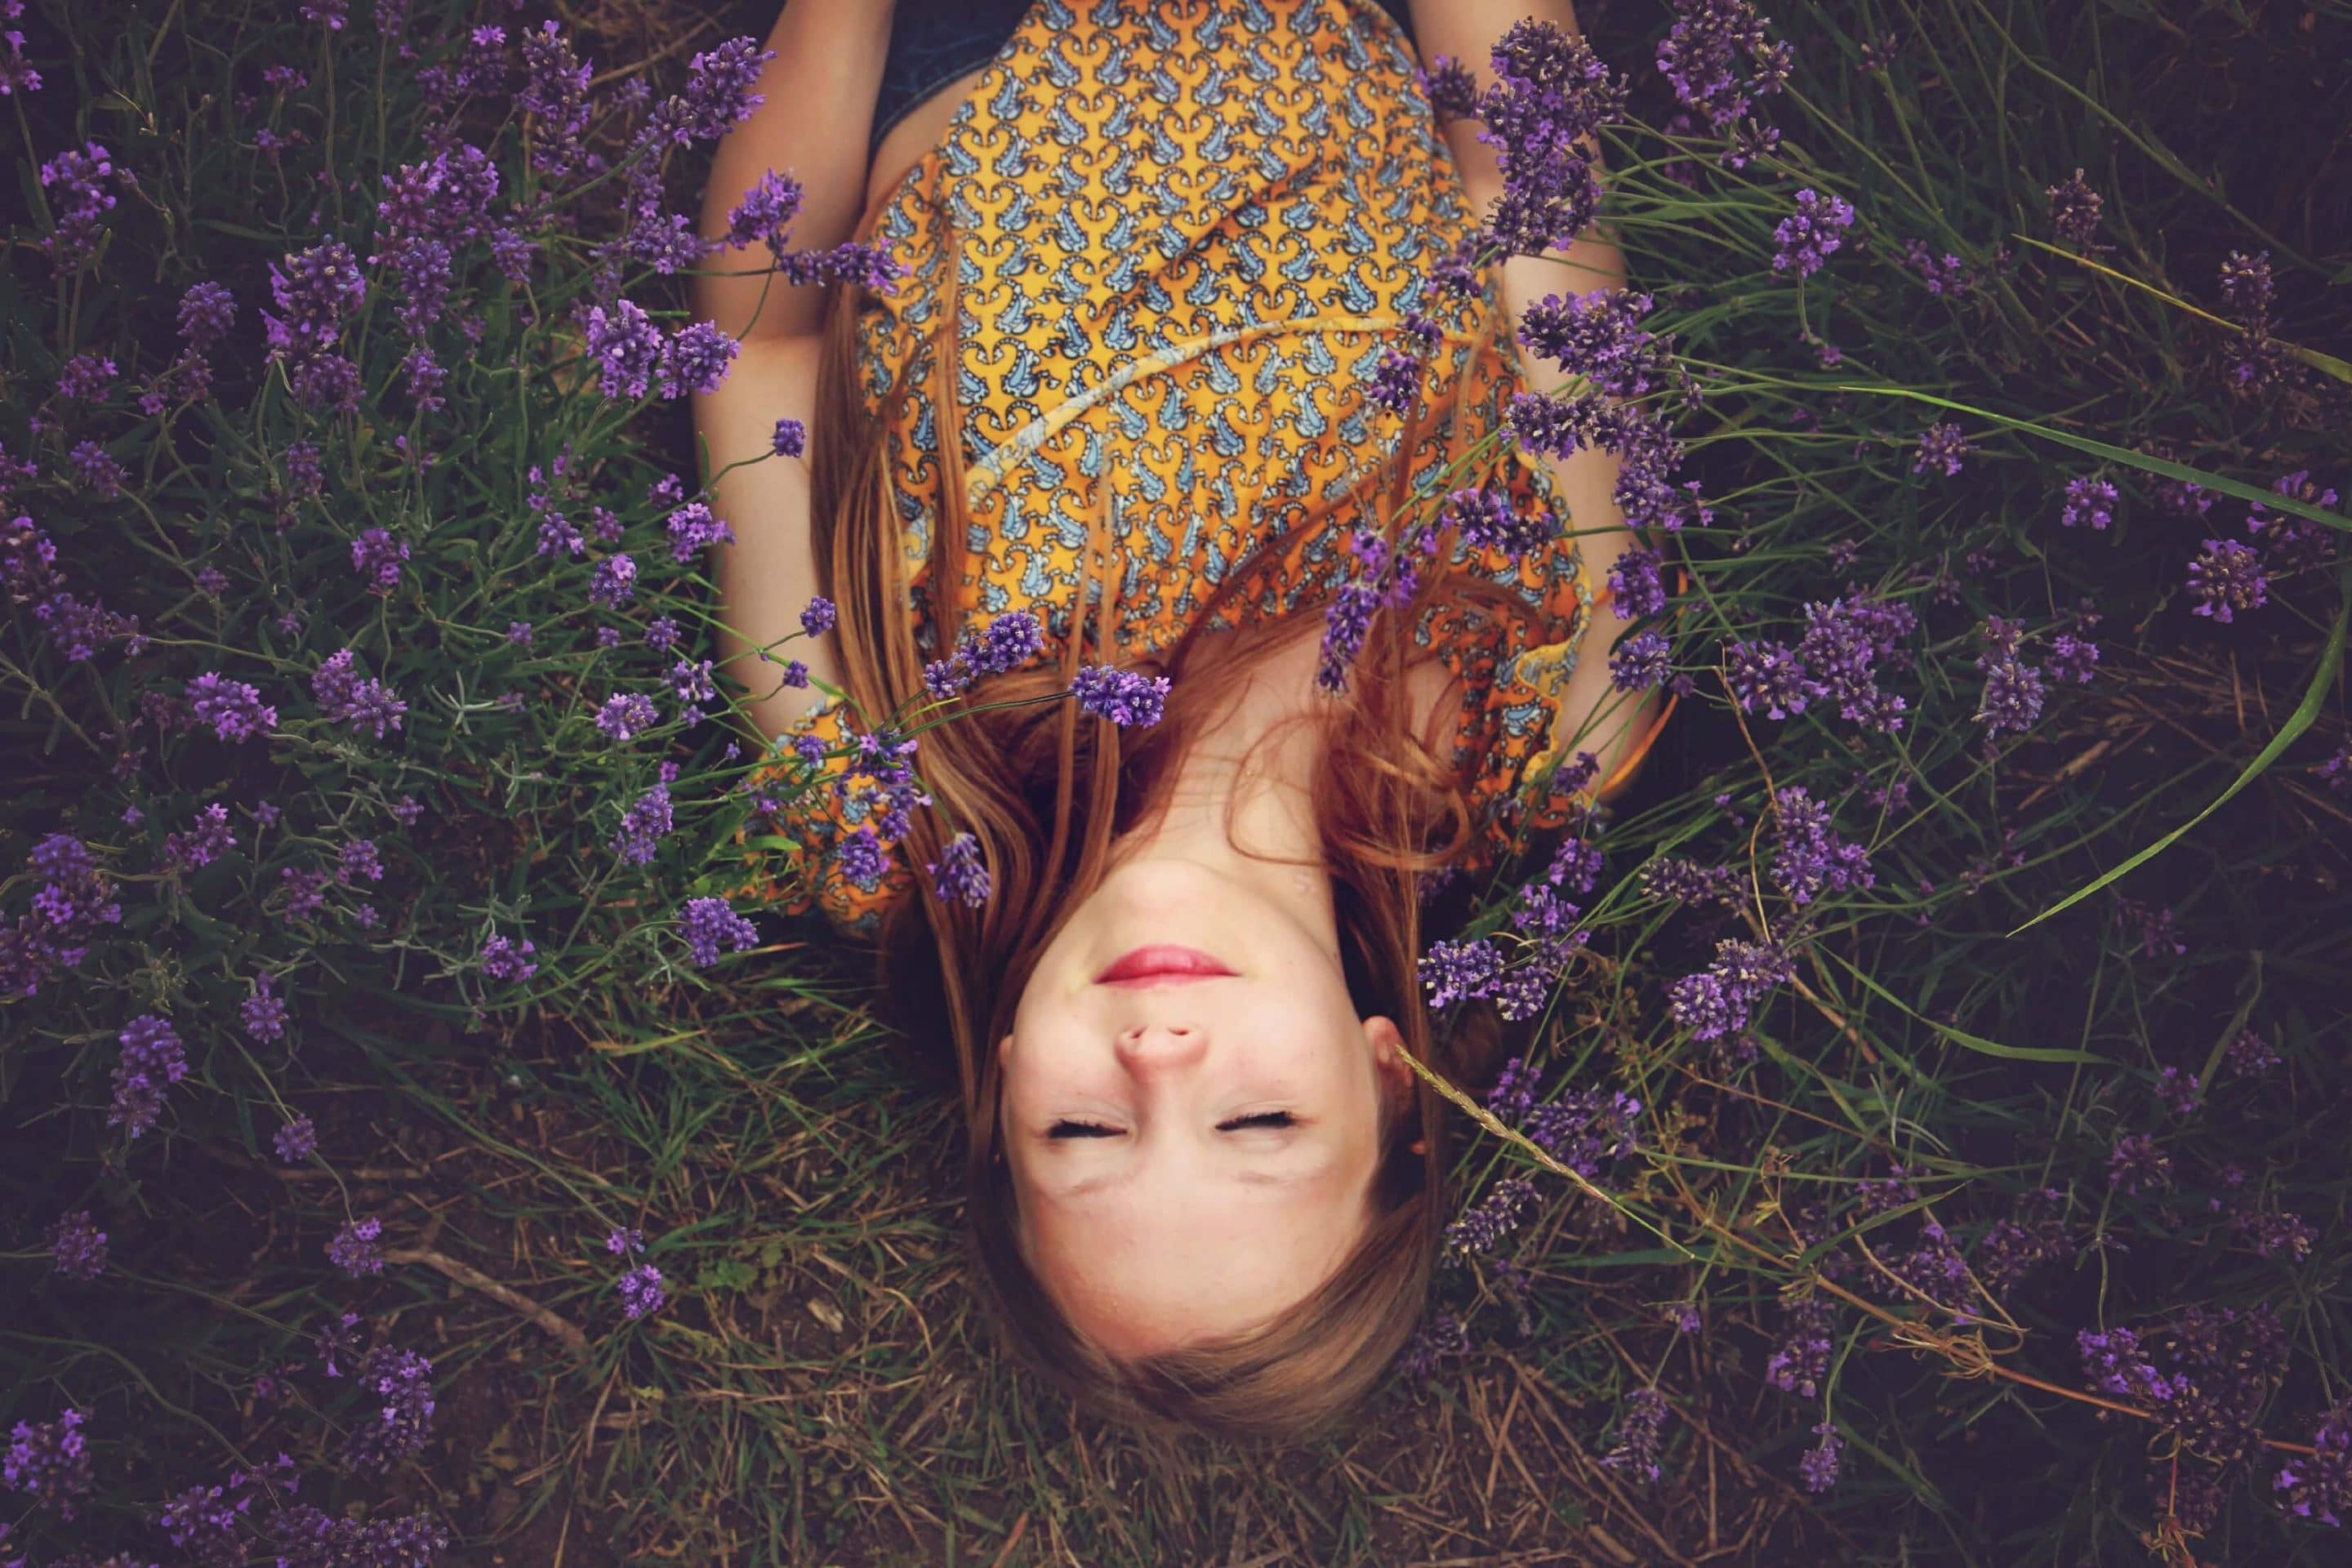 6 Simple Ways To Find Inner Peace Amidst Chaos